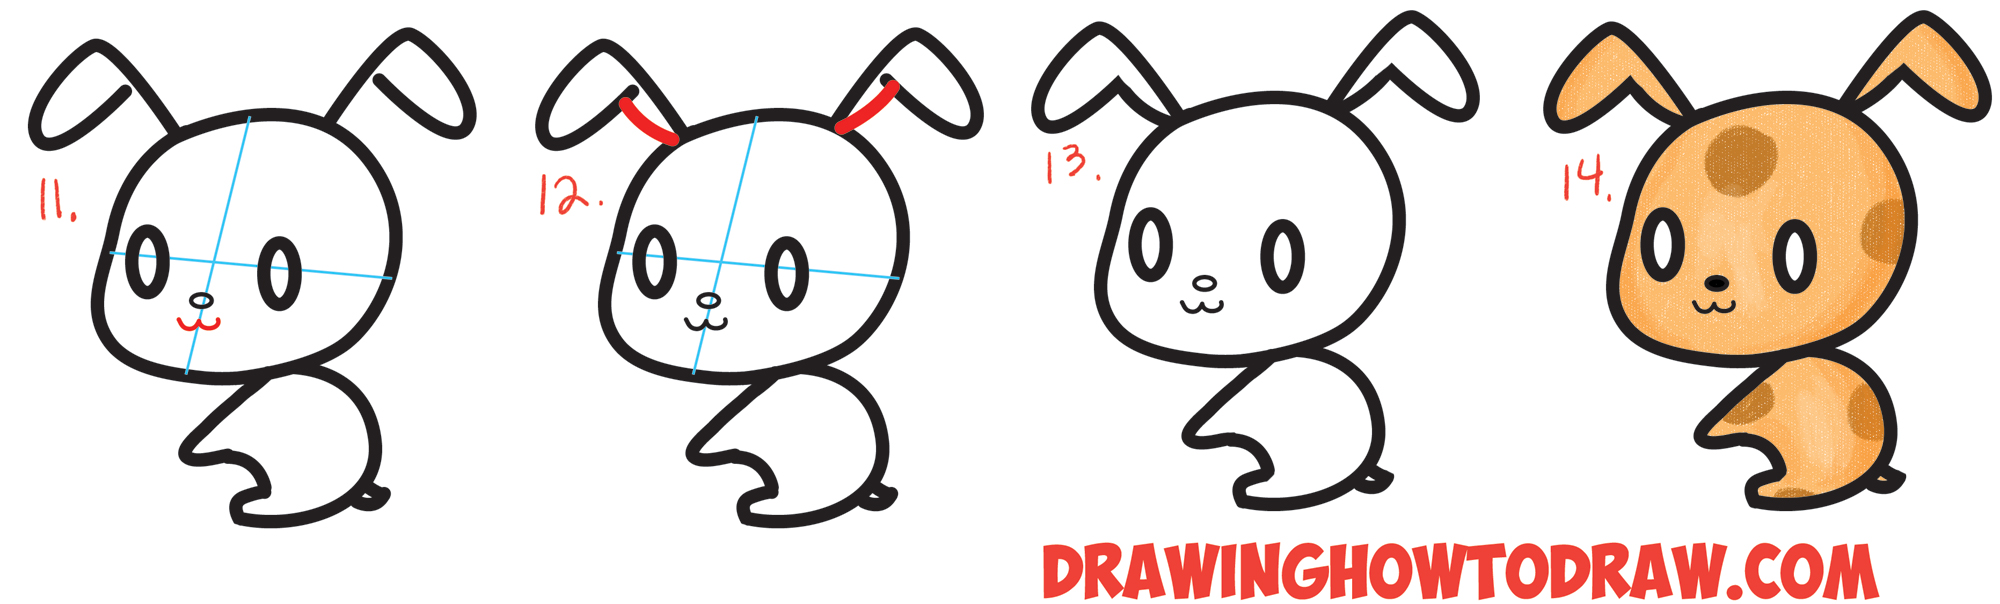 How to Draw a Cute Chibi / Kawaii Cartoon #3 Shape Puppy Doggy